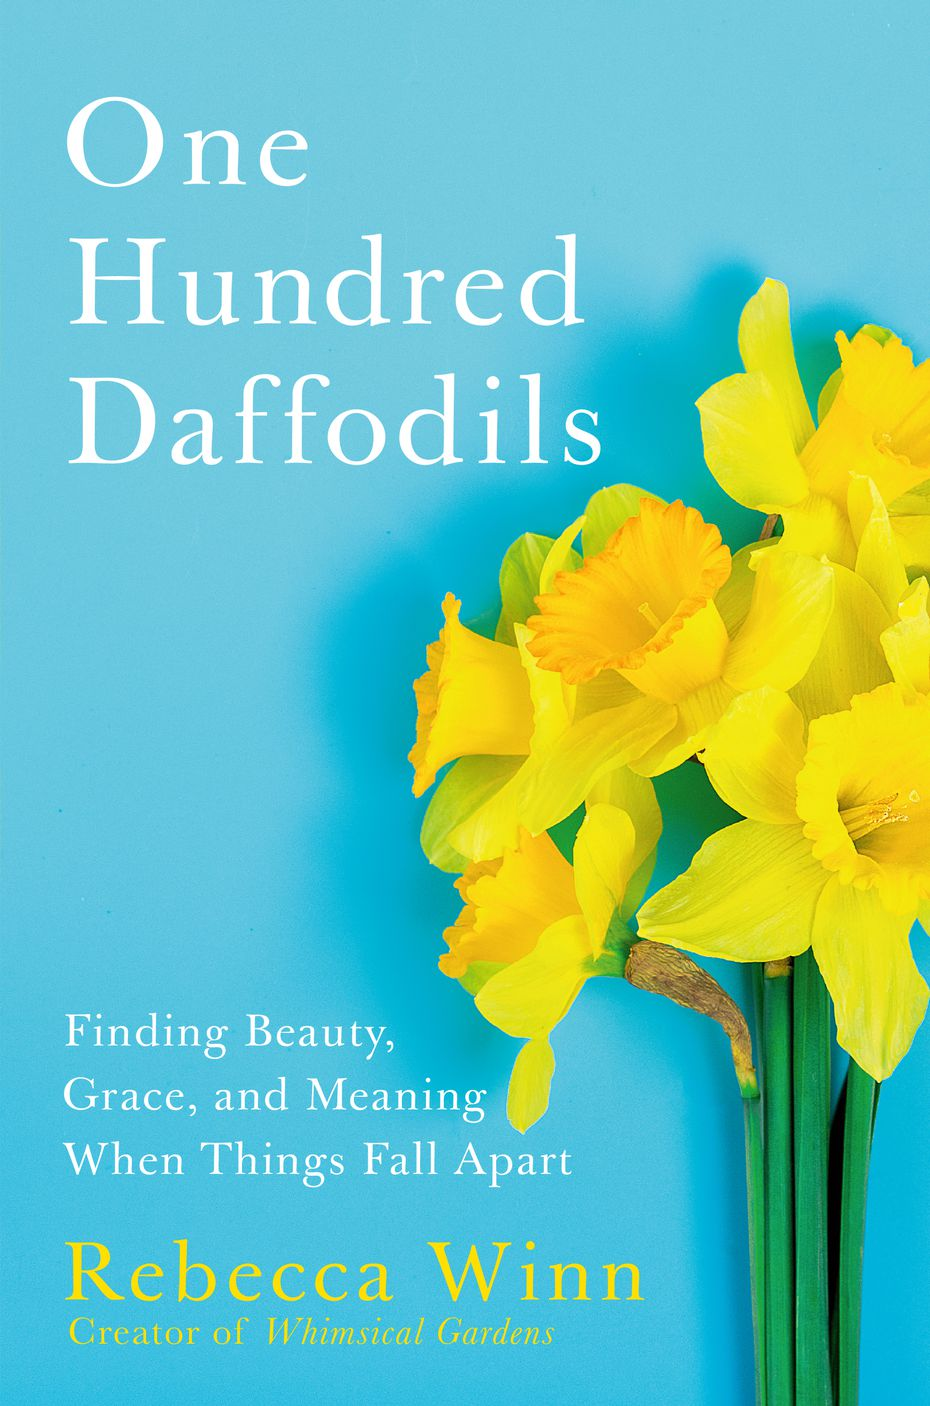 """One Hundred Daffodils: Finding Beauty, Grace, and Meaning When Things Fall Apart"" details author Rebecca Winn's transformational path after the end of a 25-year marriage."